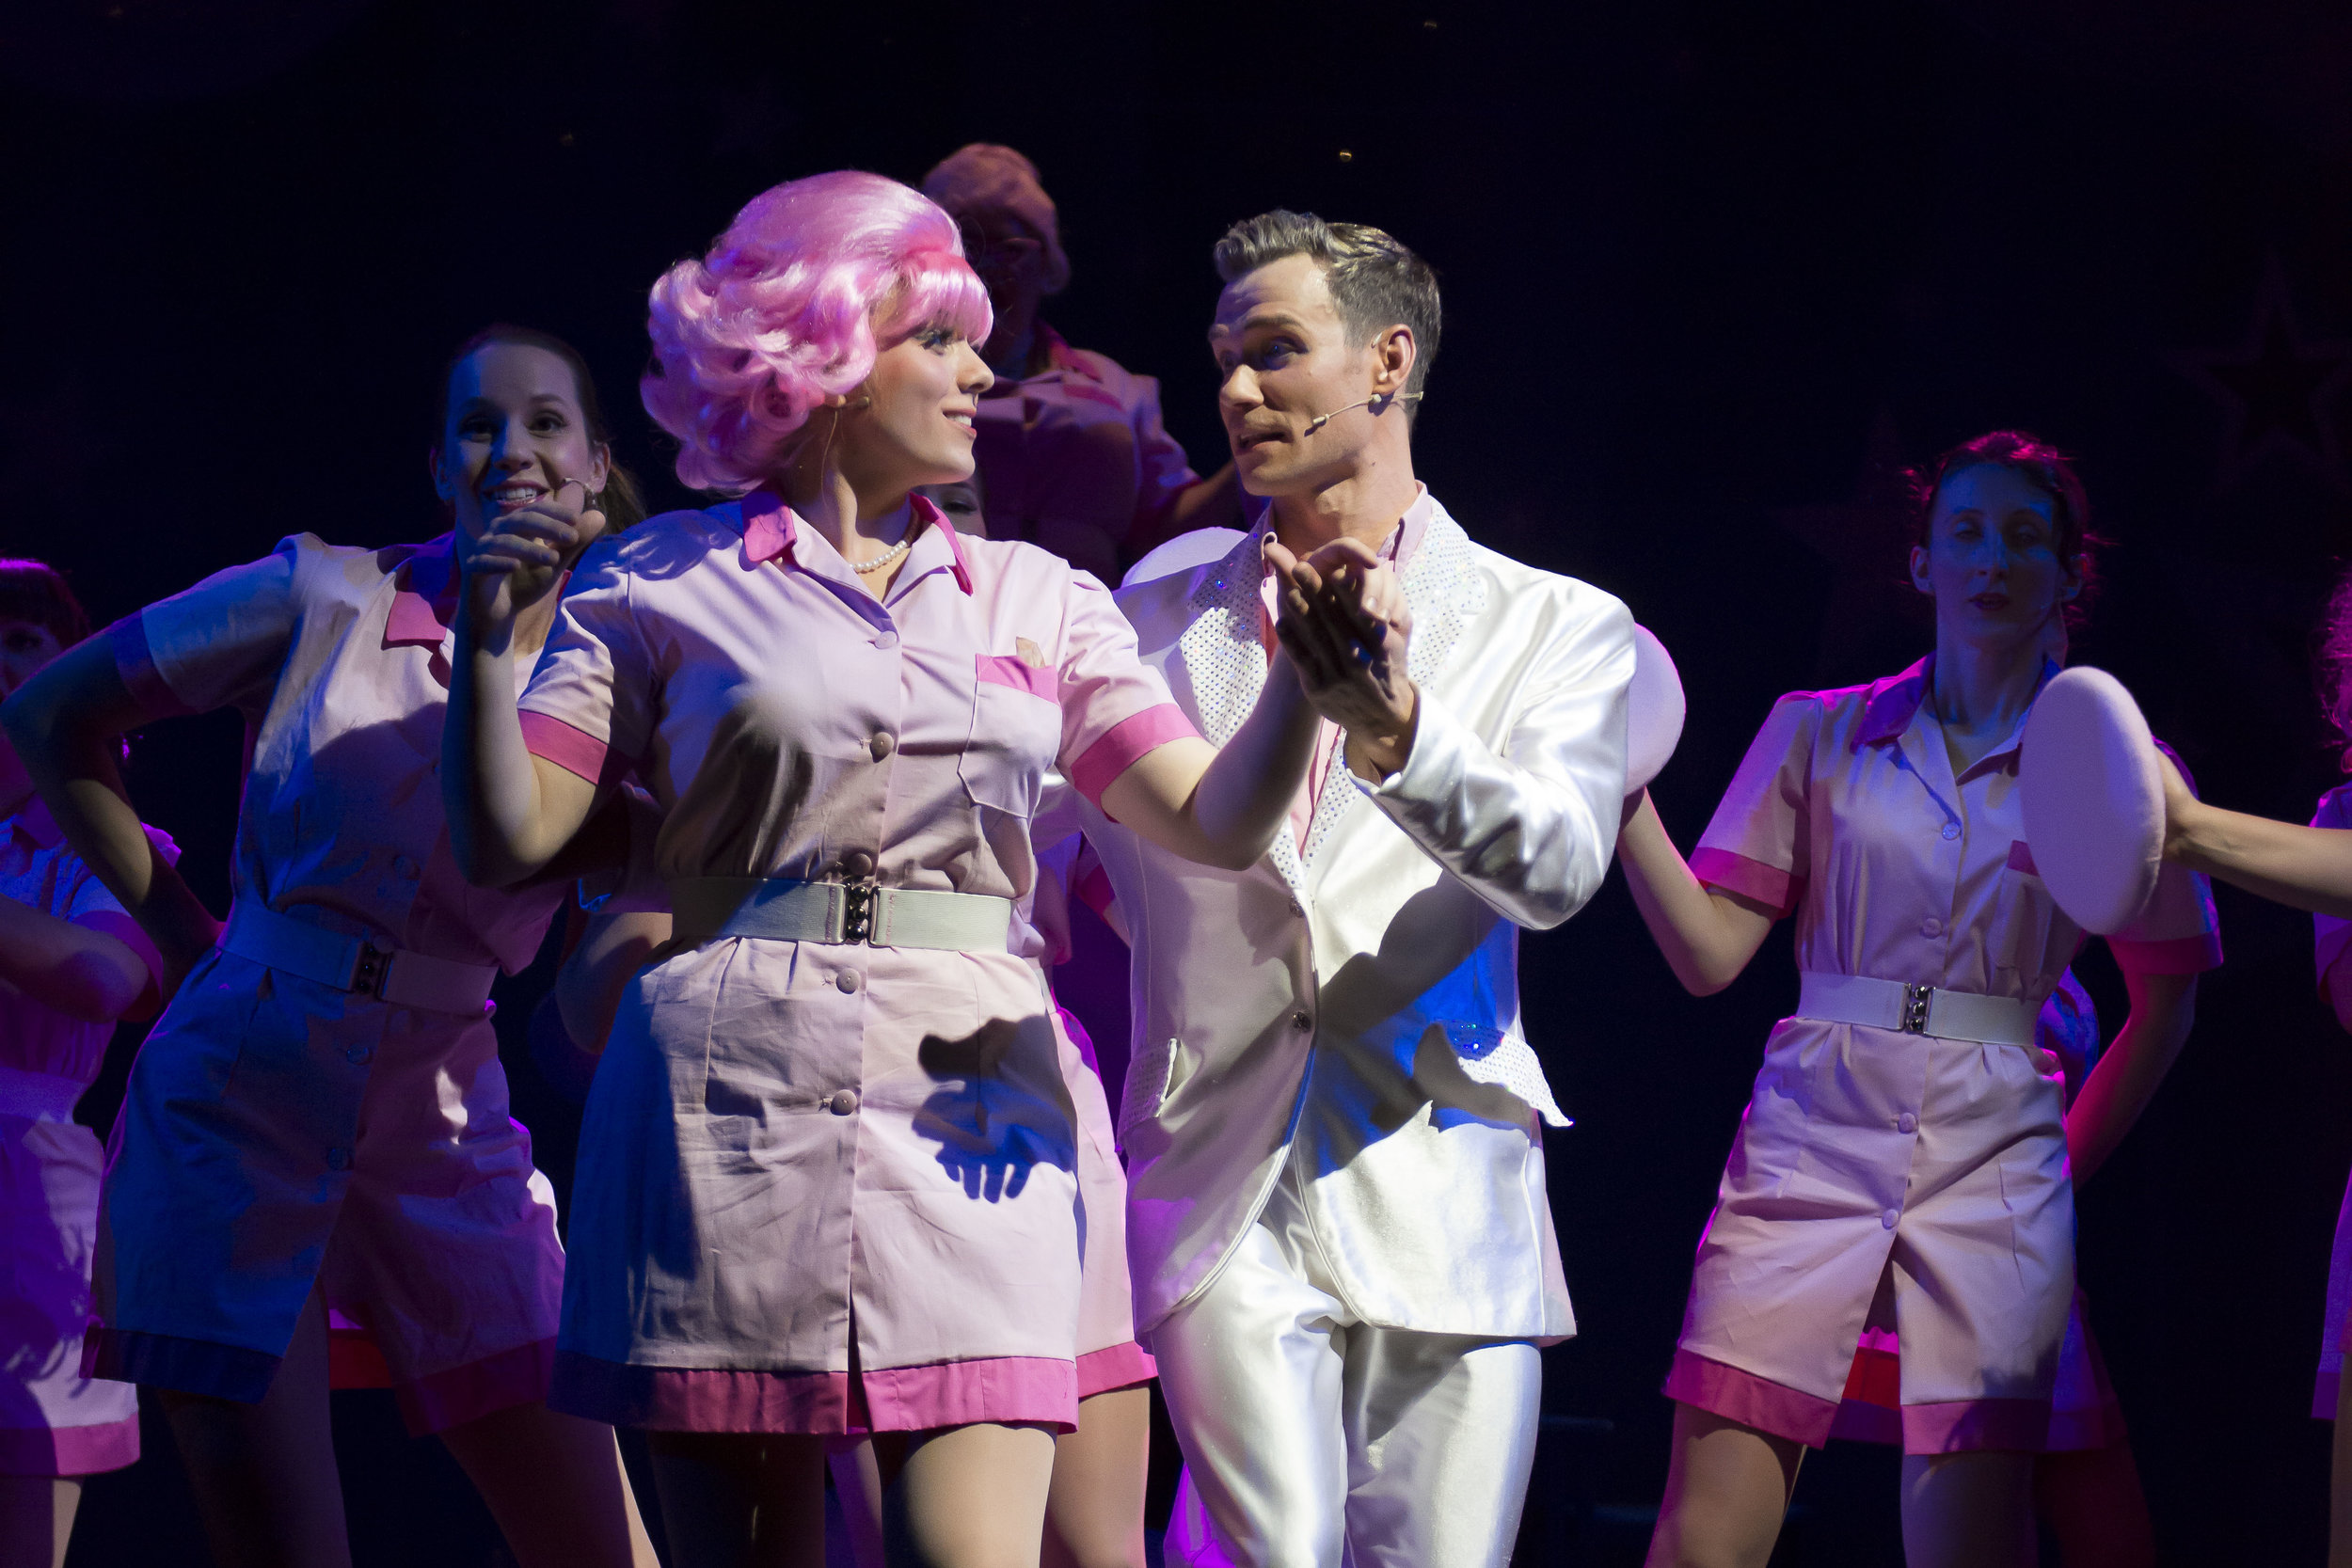 Kirsty Bennett as Frenchie and Bryn Hughes as Teen Angel